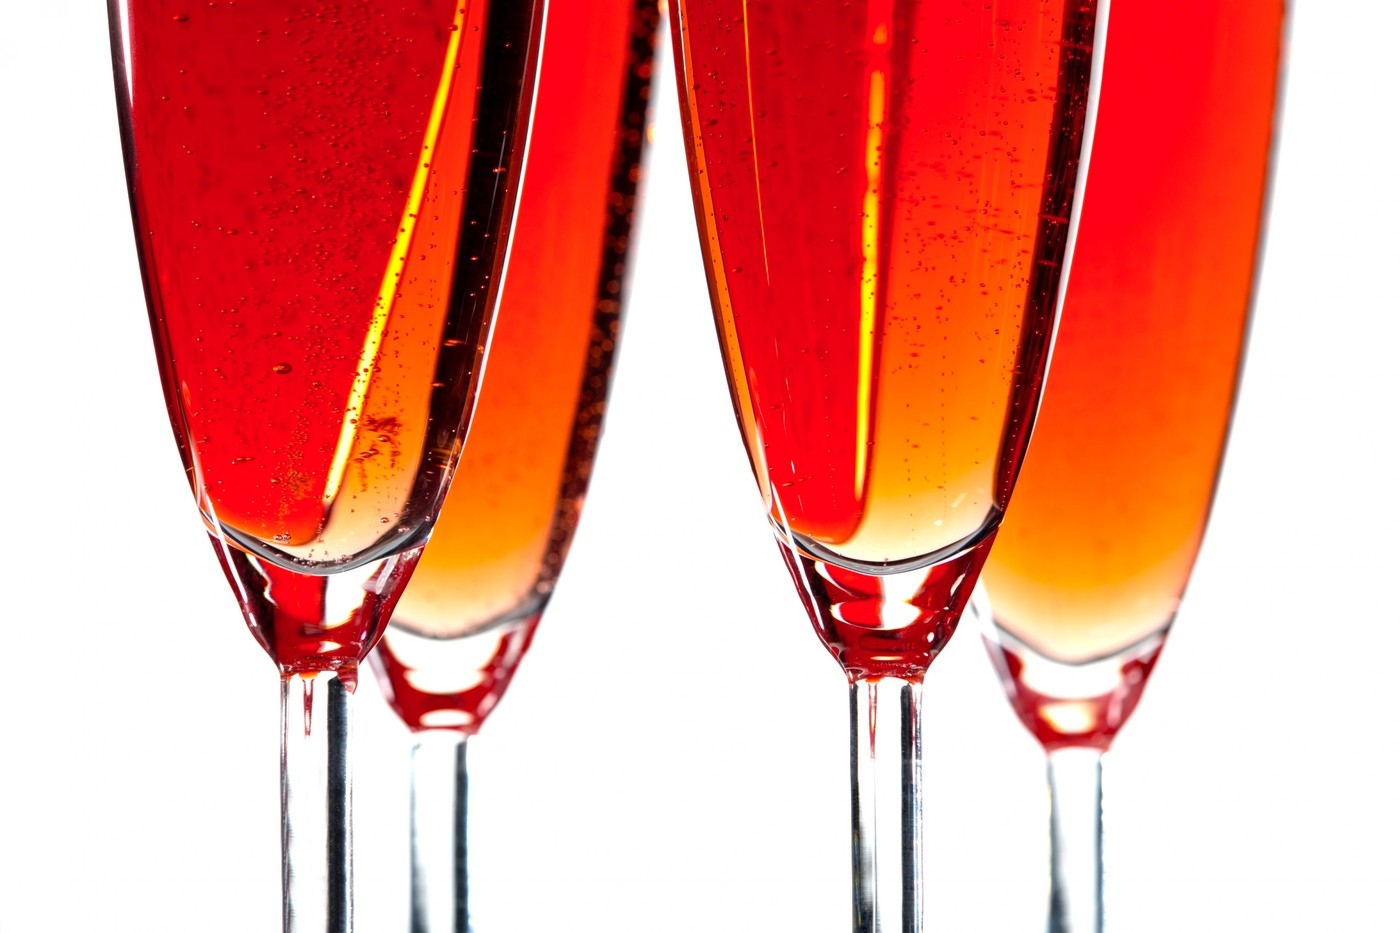 Close-up of champagne flutes against white background